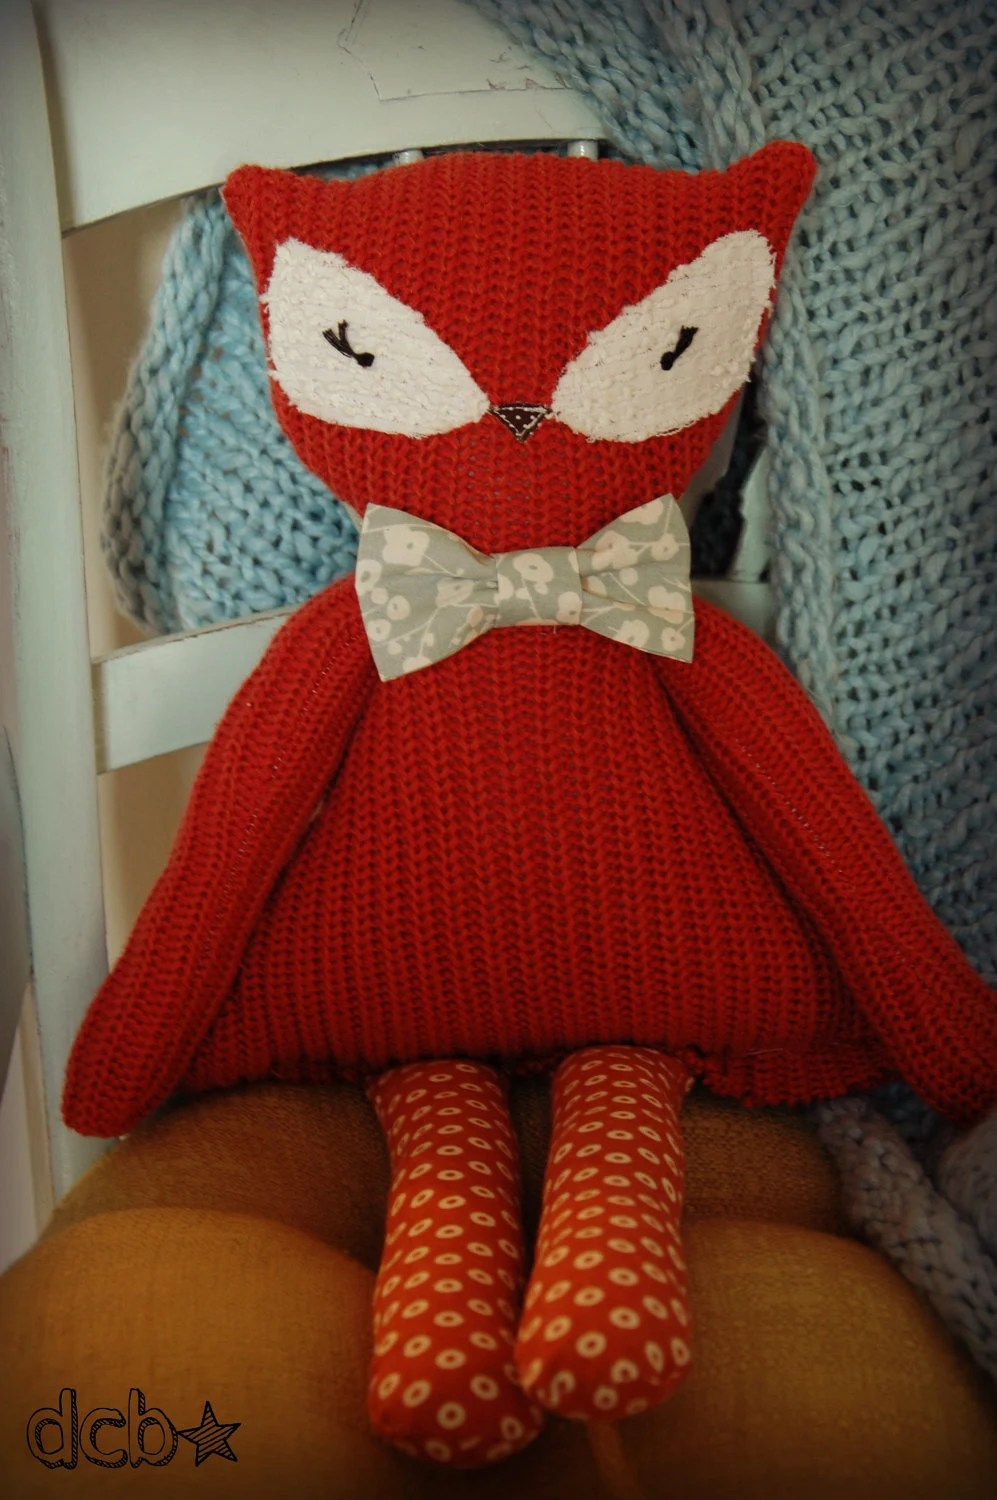 Fox plush buddy- Customizable upcycled knit